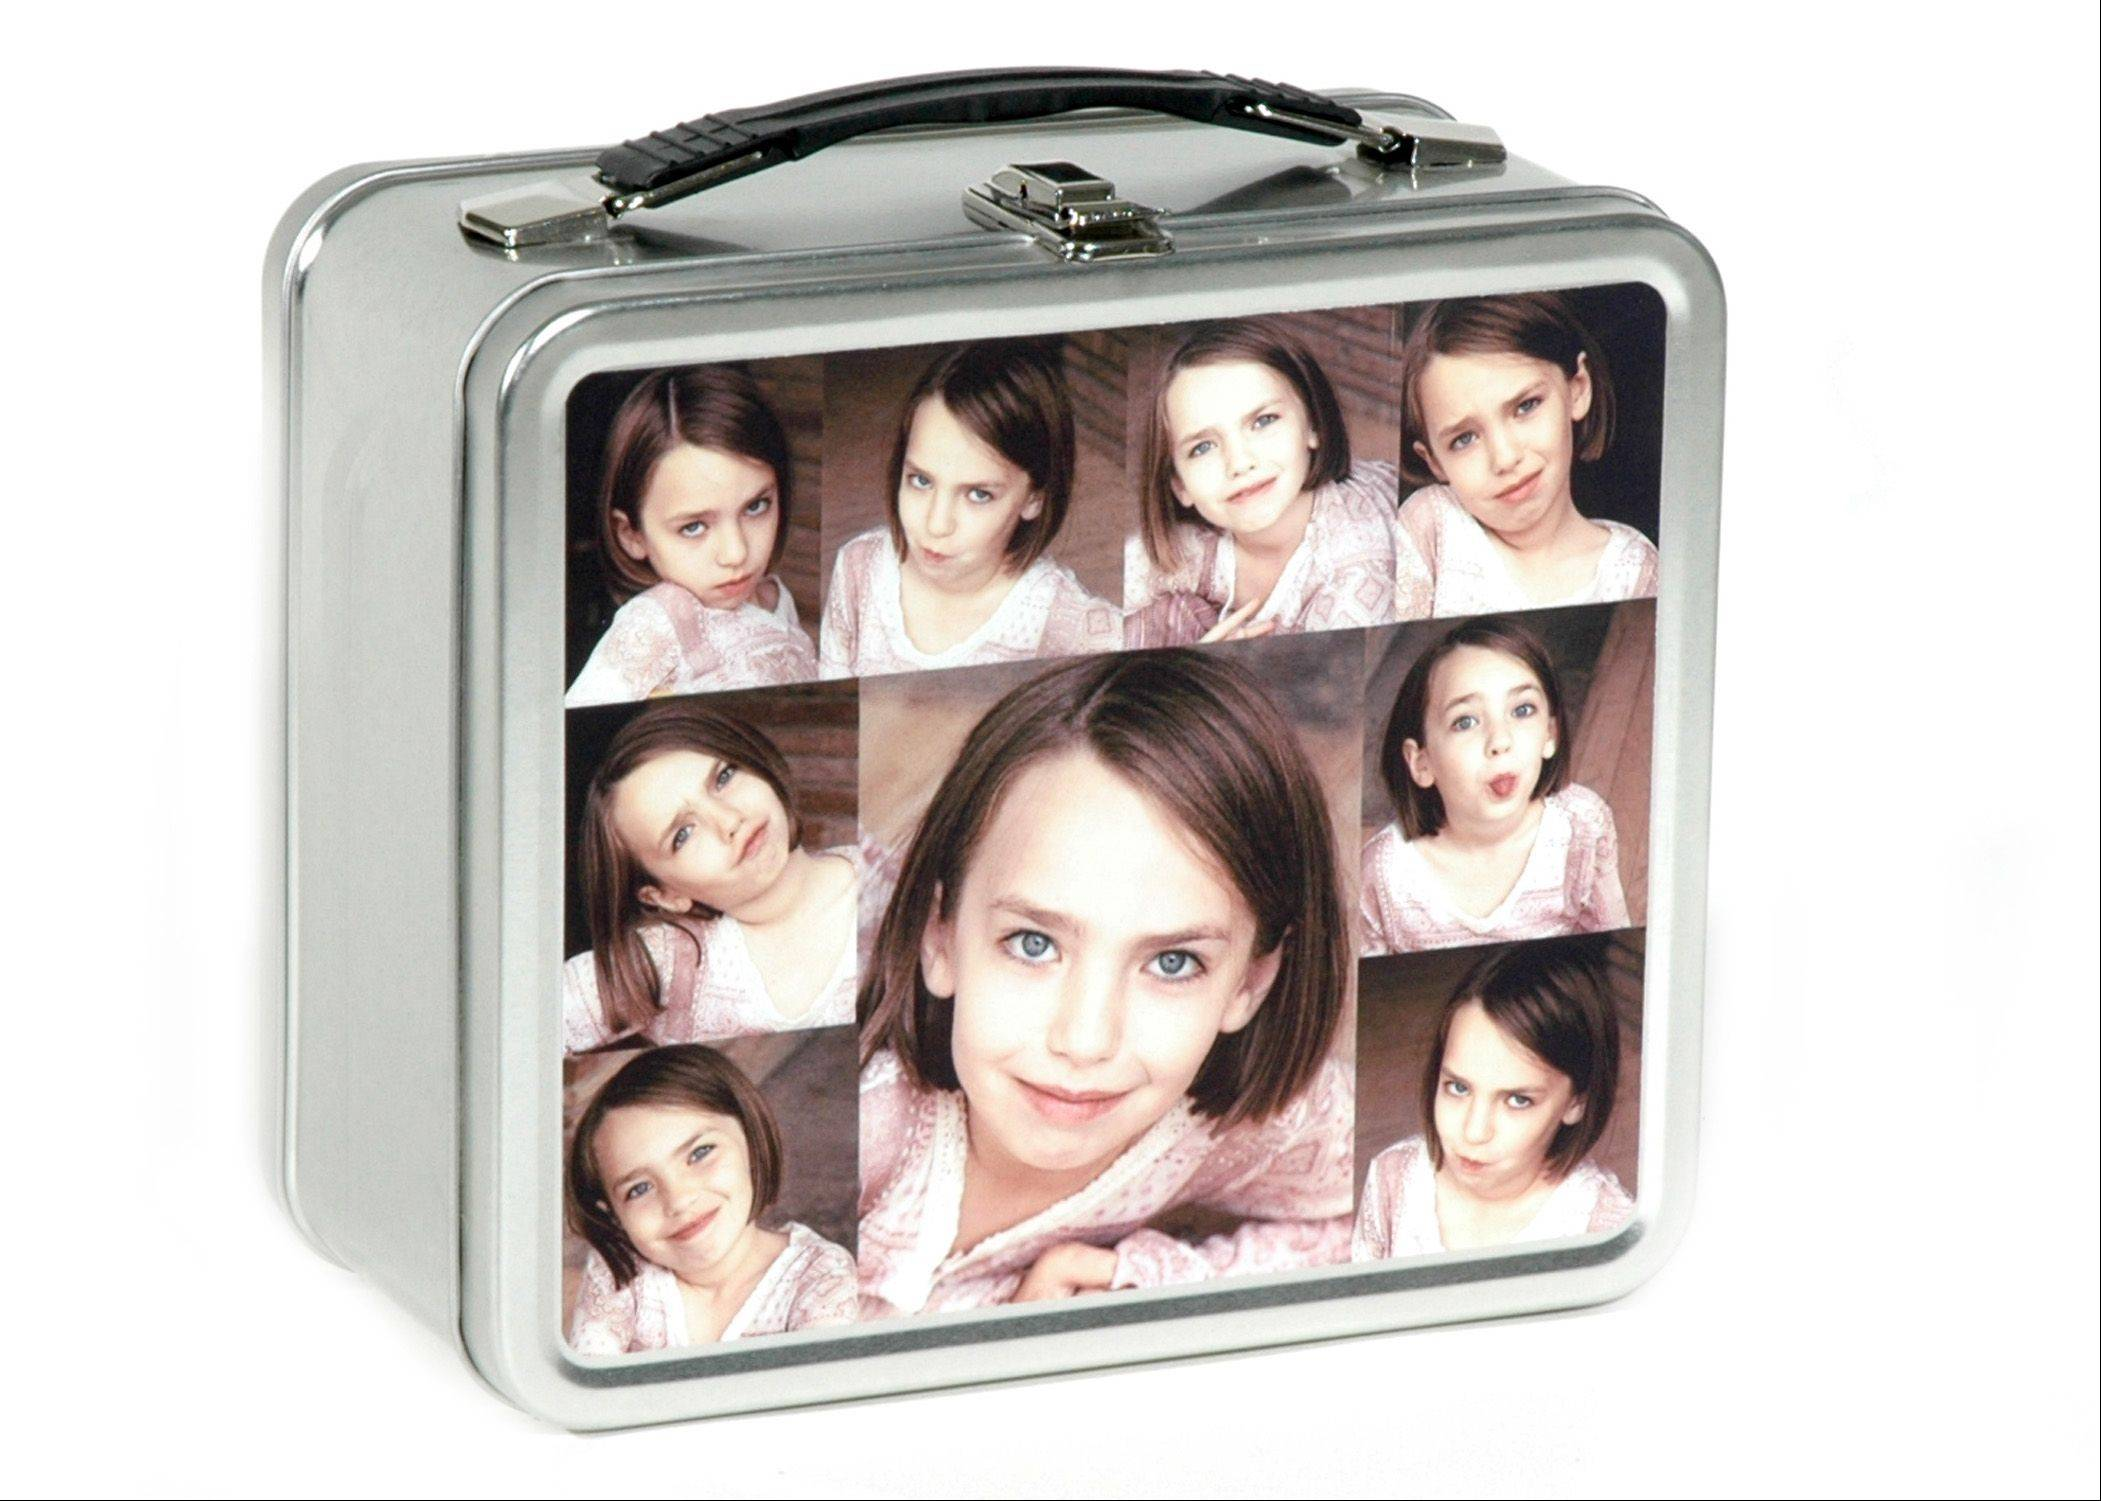 This product image released by PhotoLunchbox shows one of the company's personalized metal lunchboxes.